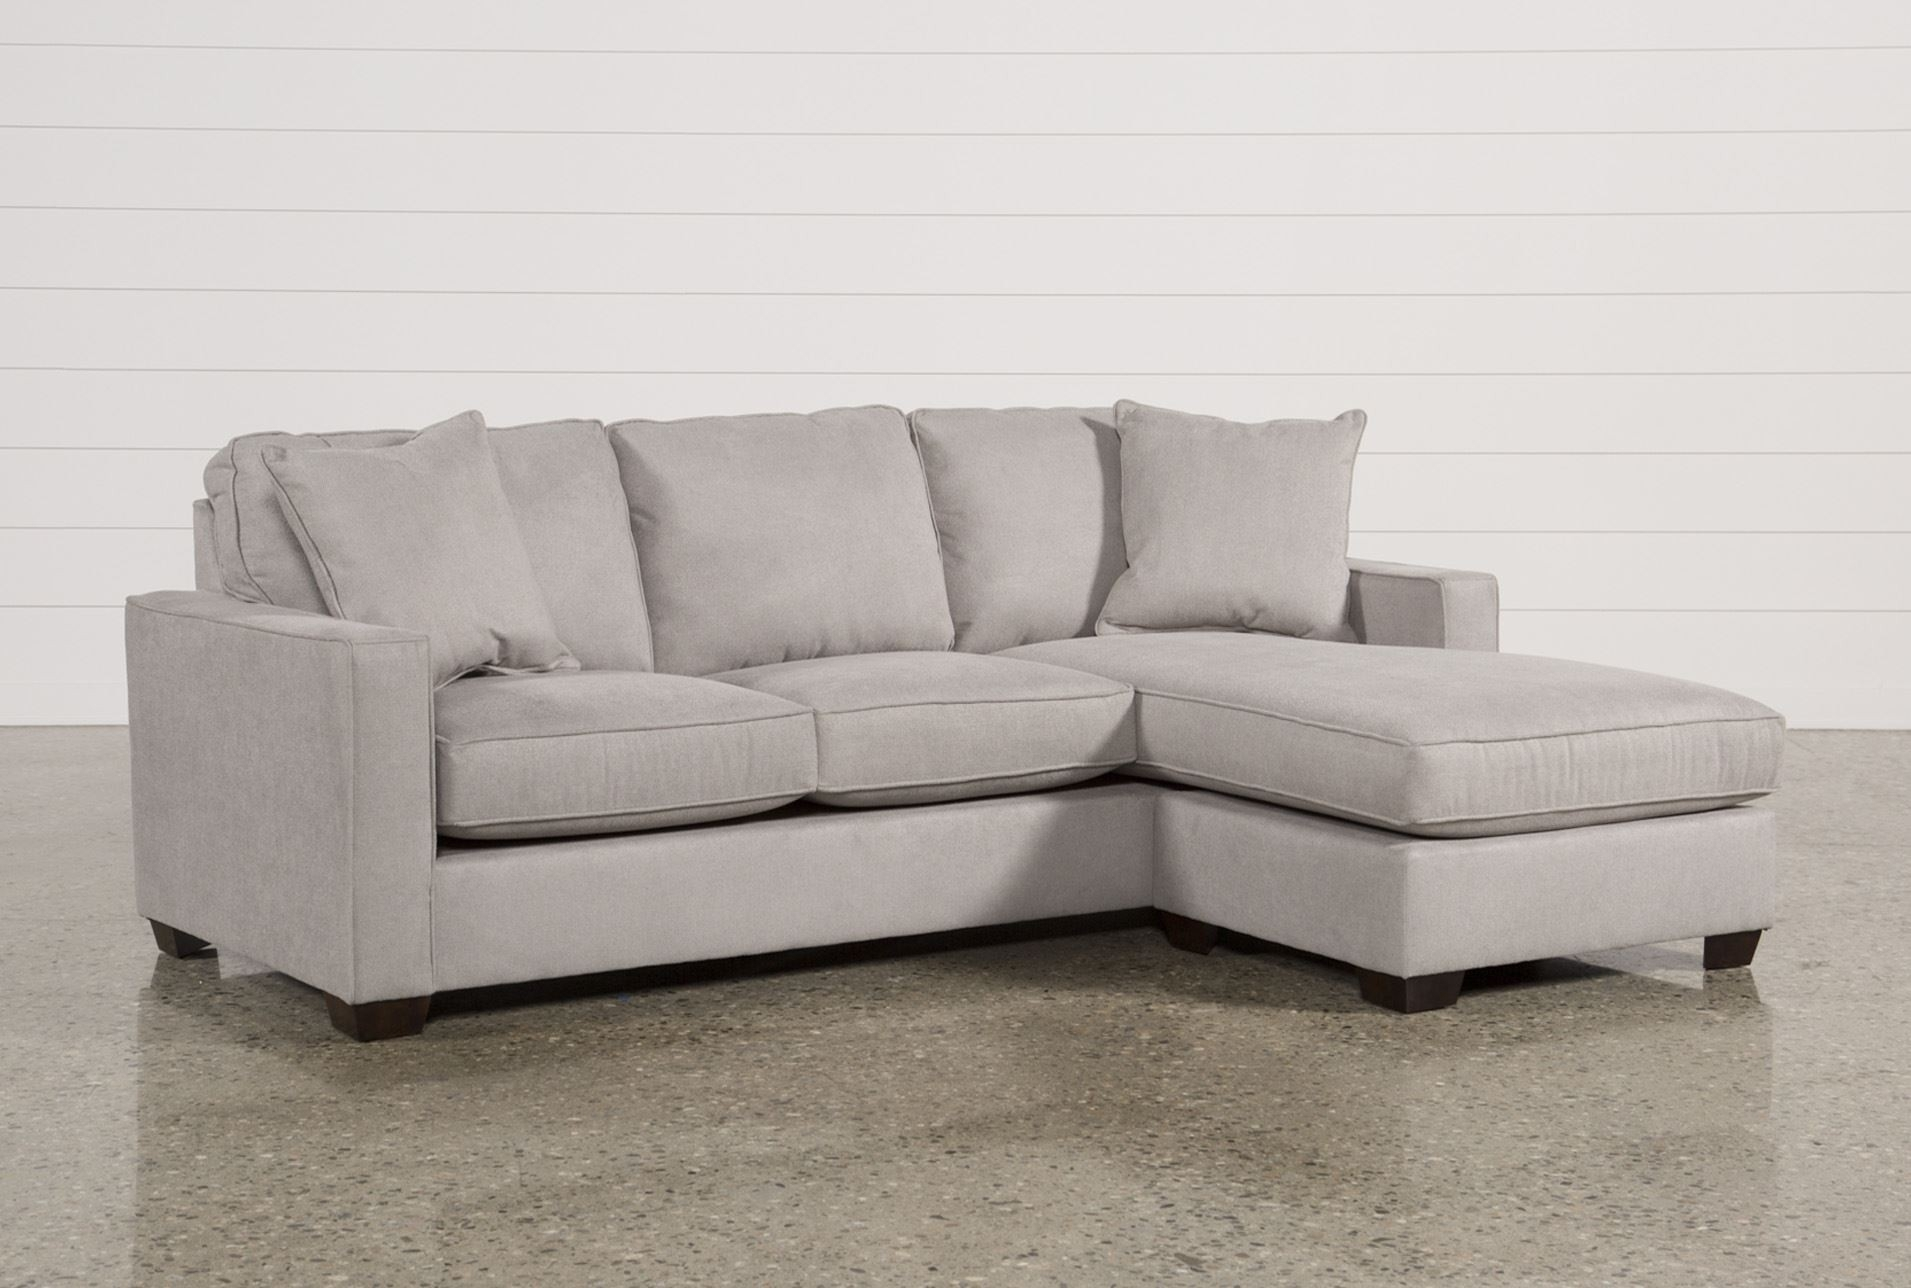 Living Spaces Sectional Sofas Kerri 2 Piece W Raf Chaise 107153 0 Pertaining To Kerri 2 Piece Sectionals With Raf Chaise (Image 22 of 25)